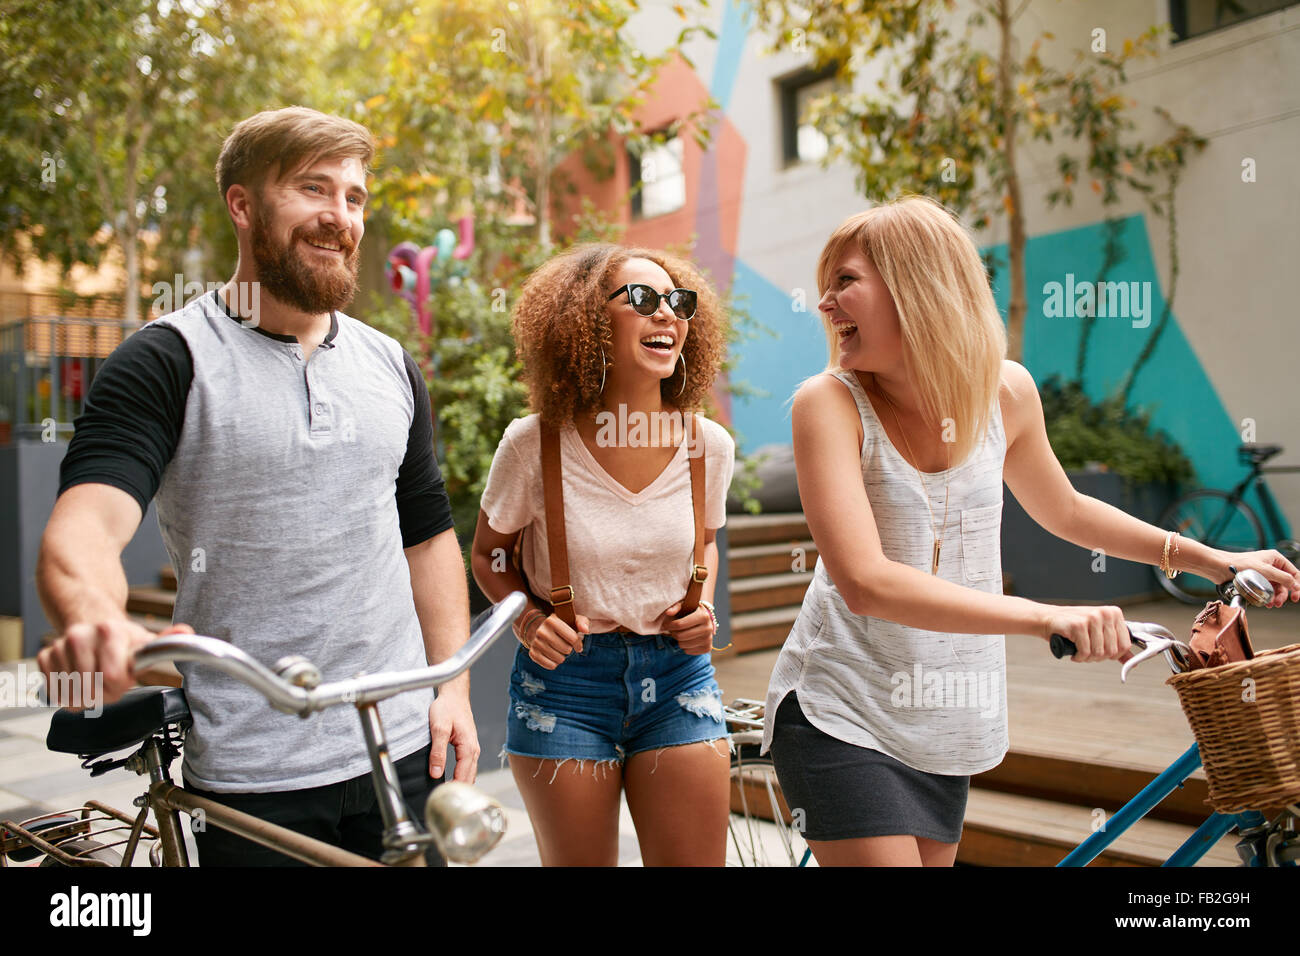 Mixed raced group of friends commuting in city. Three young people walking with their bicycles and having fun. - Stock Image